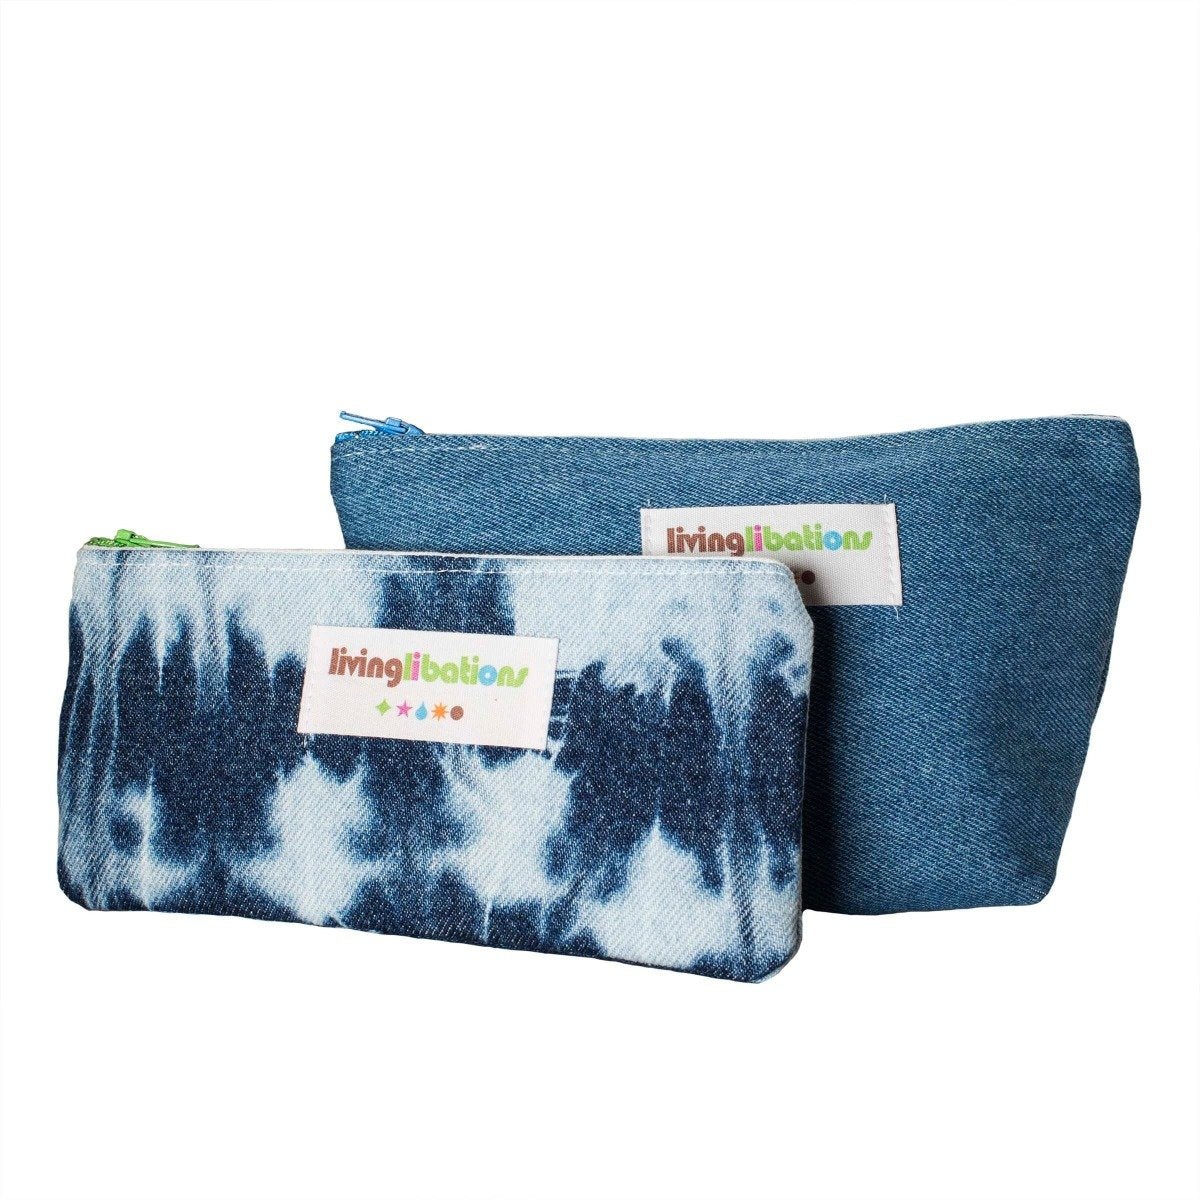 Essential Oil EMF Protection Pouches